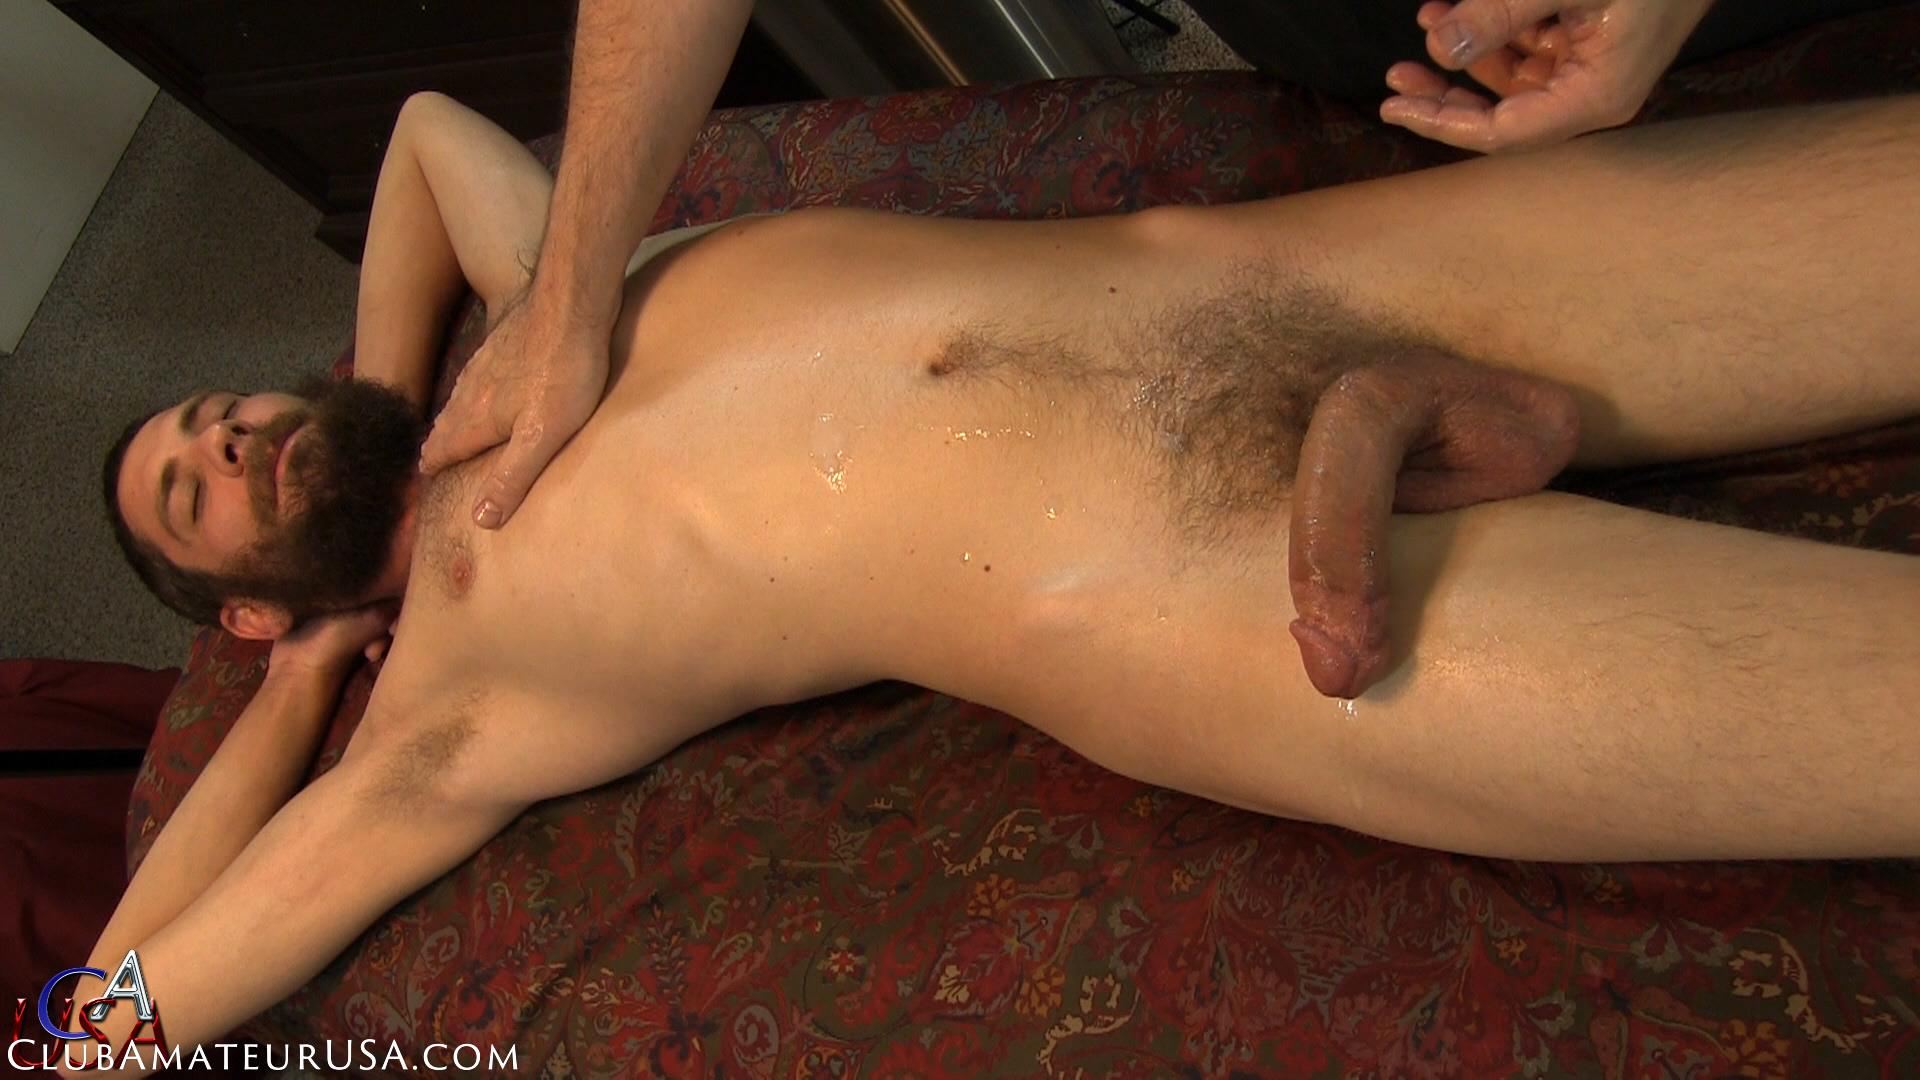 Great www.hungamateur.com gay